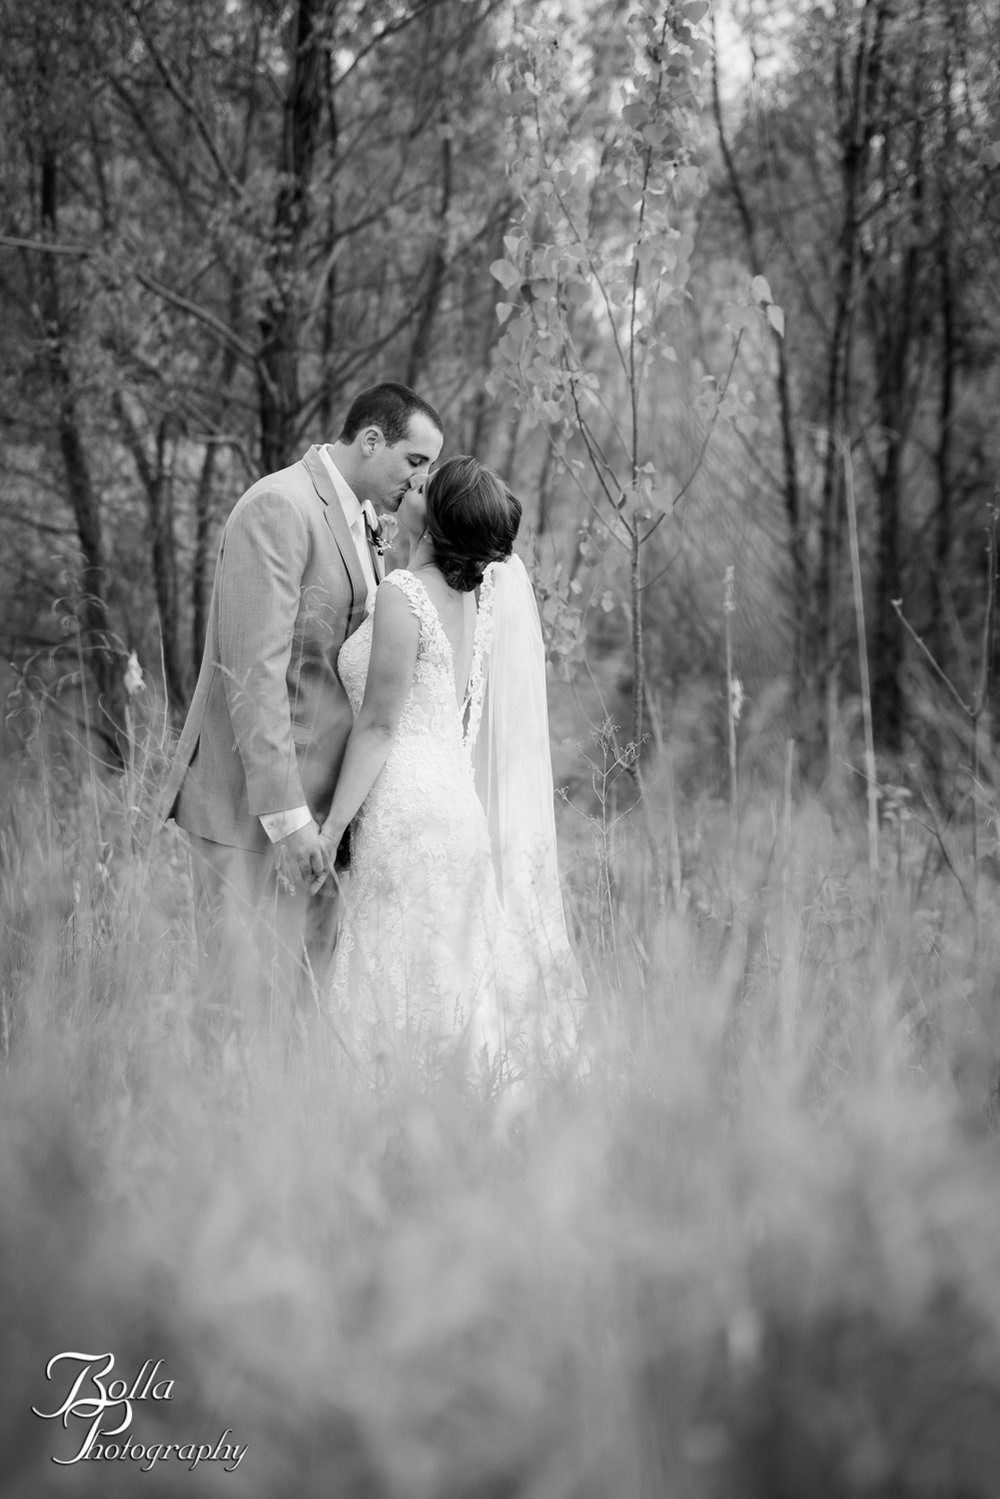 Bolla_Photography_St_Louis_wedding_photographer_Villa_Marie_Winery-0004.jpg